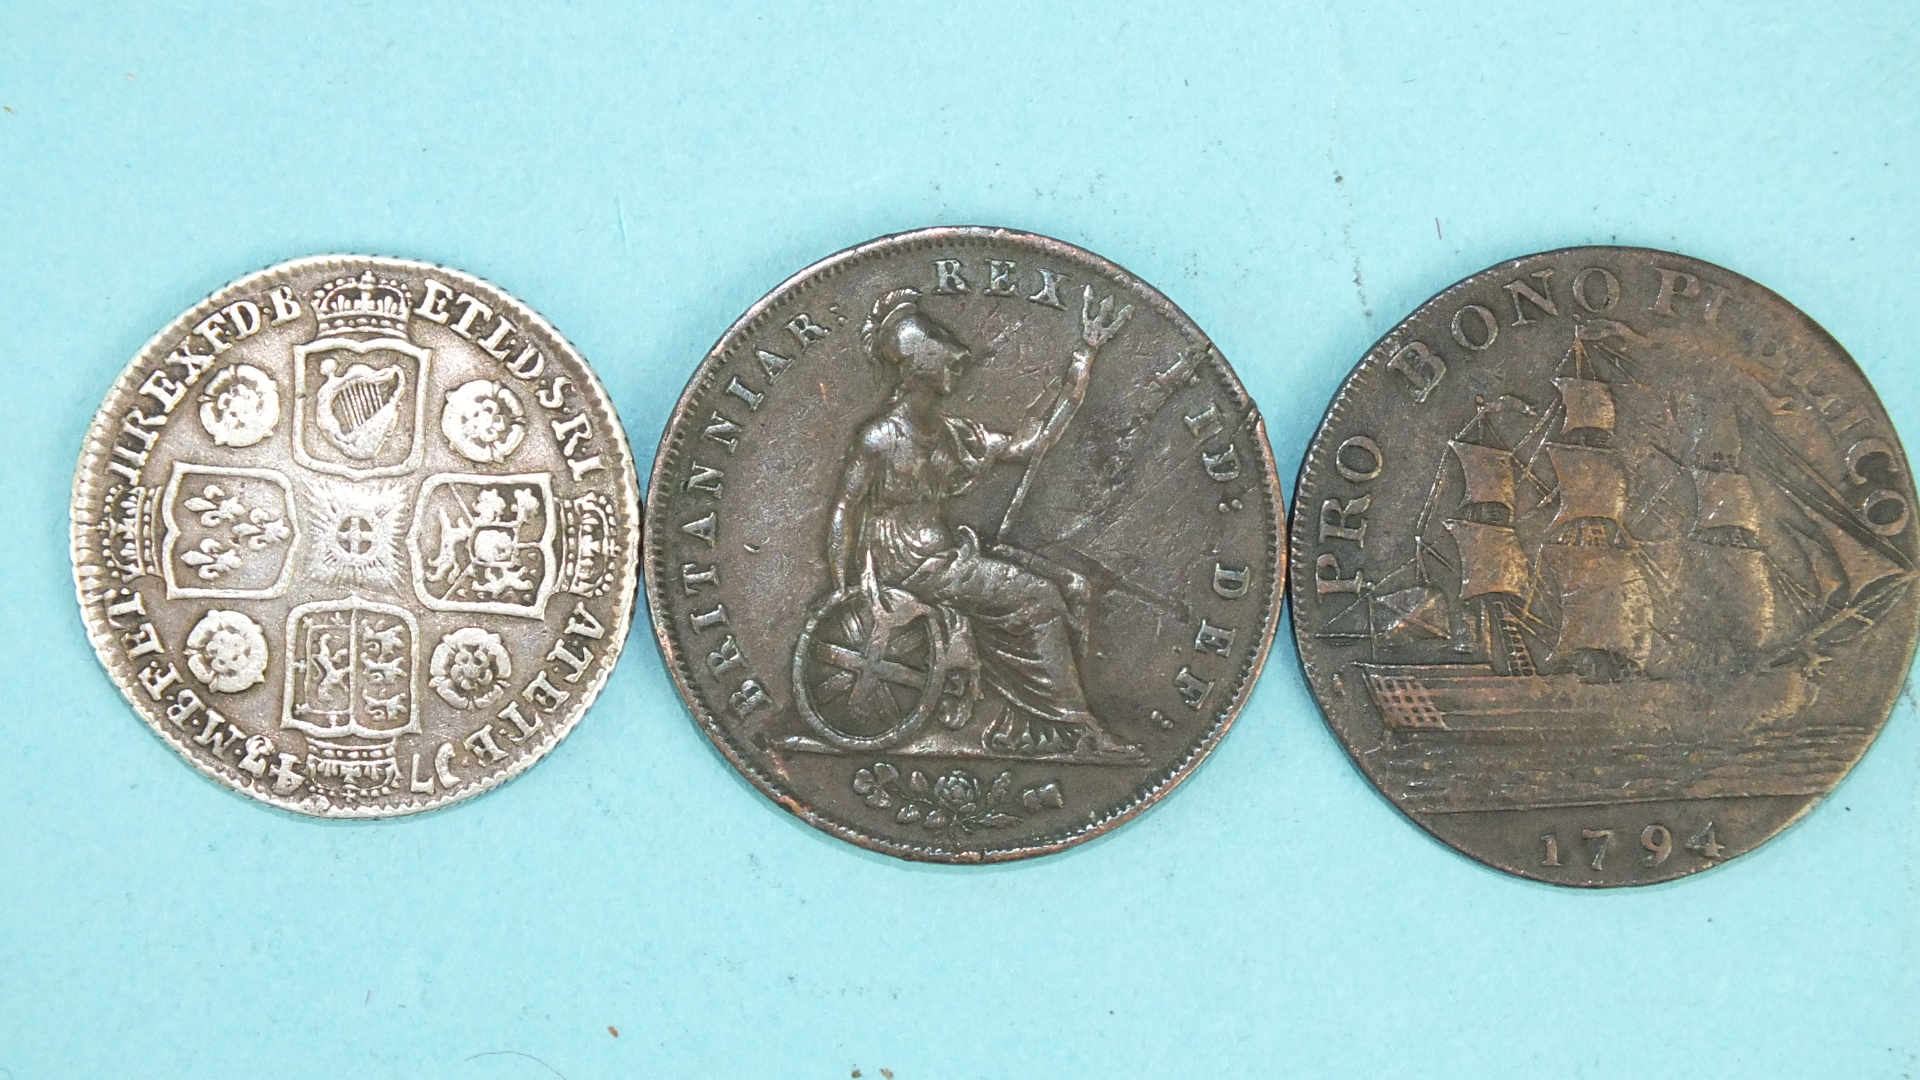 Lot 43 - A George II 1743 shilling, a George IV 1827 half-penny and a 1794 Gosport Promissory half-penny